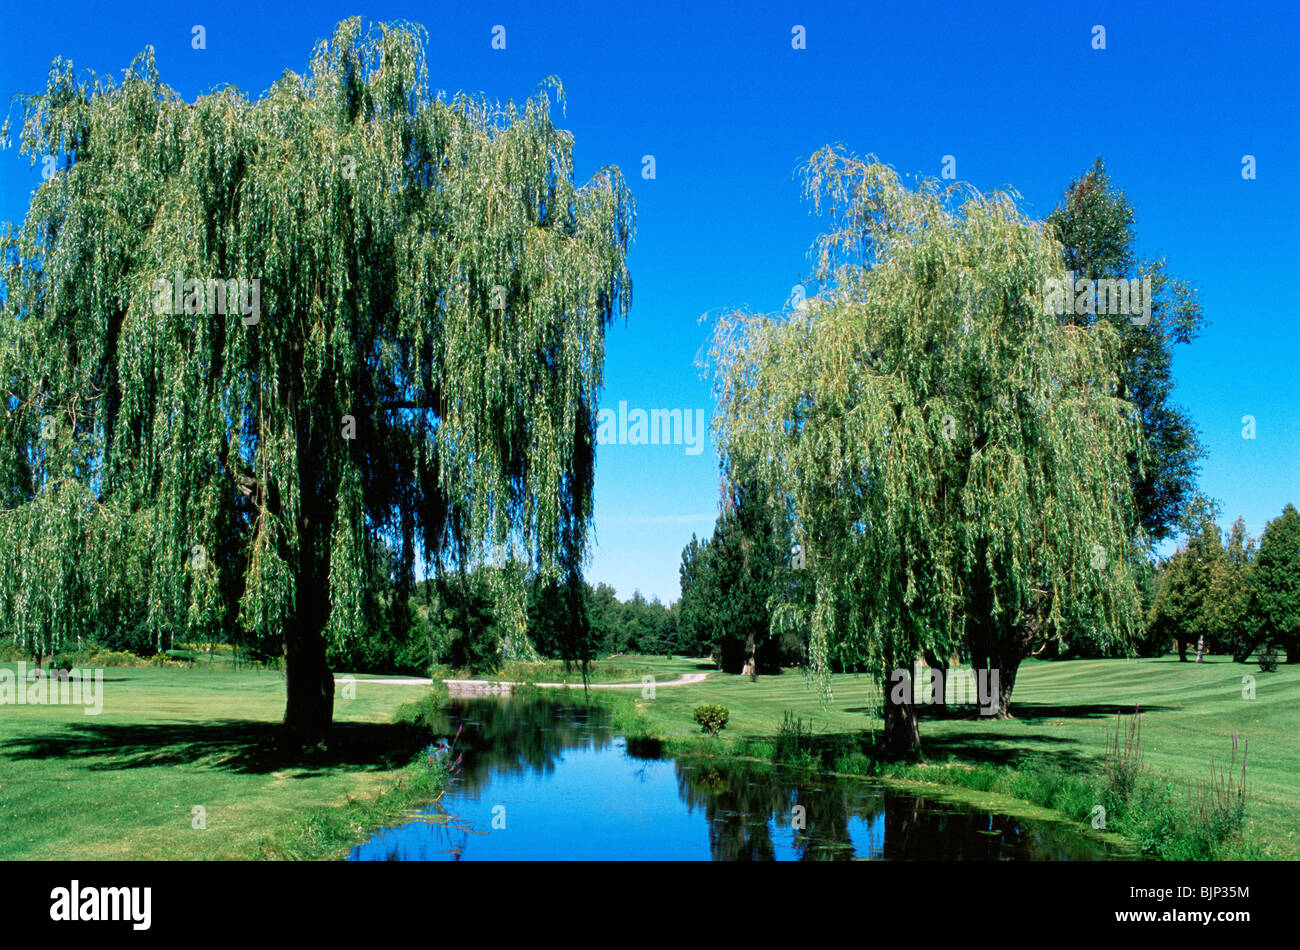 Weeping willow trees on a golf course - Stock Image